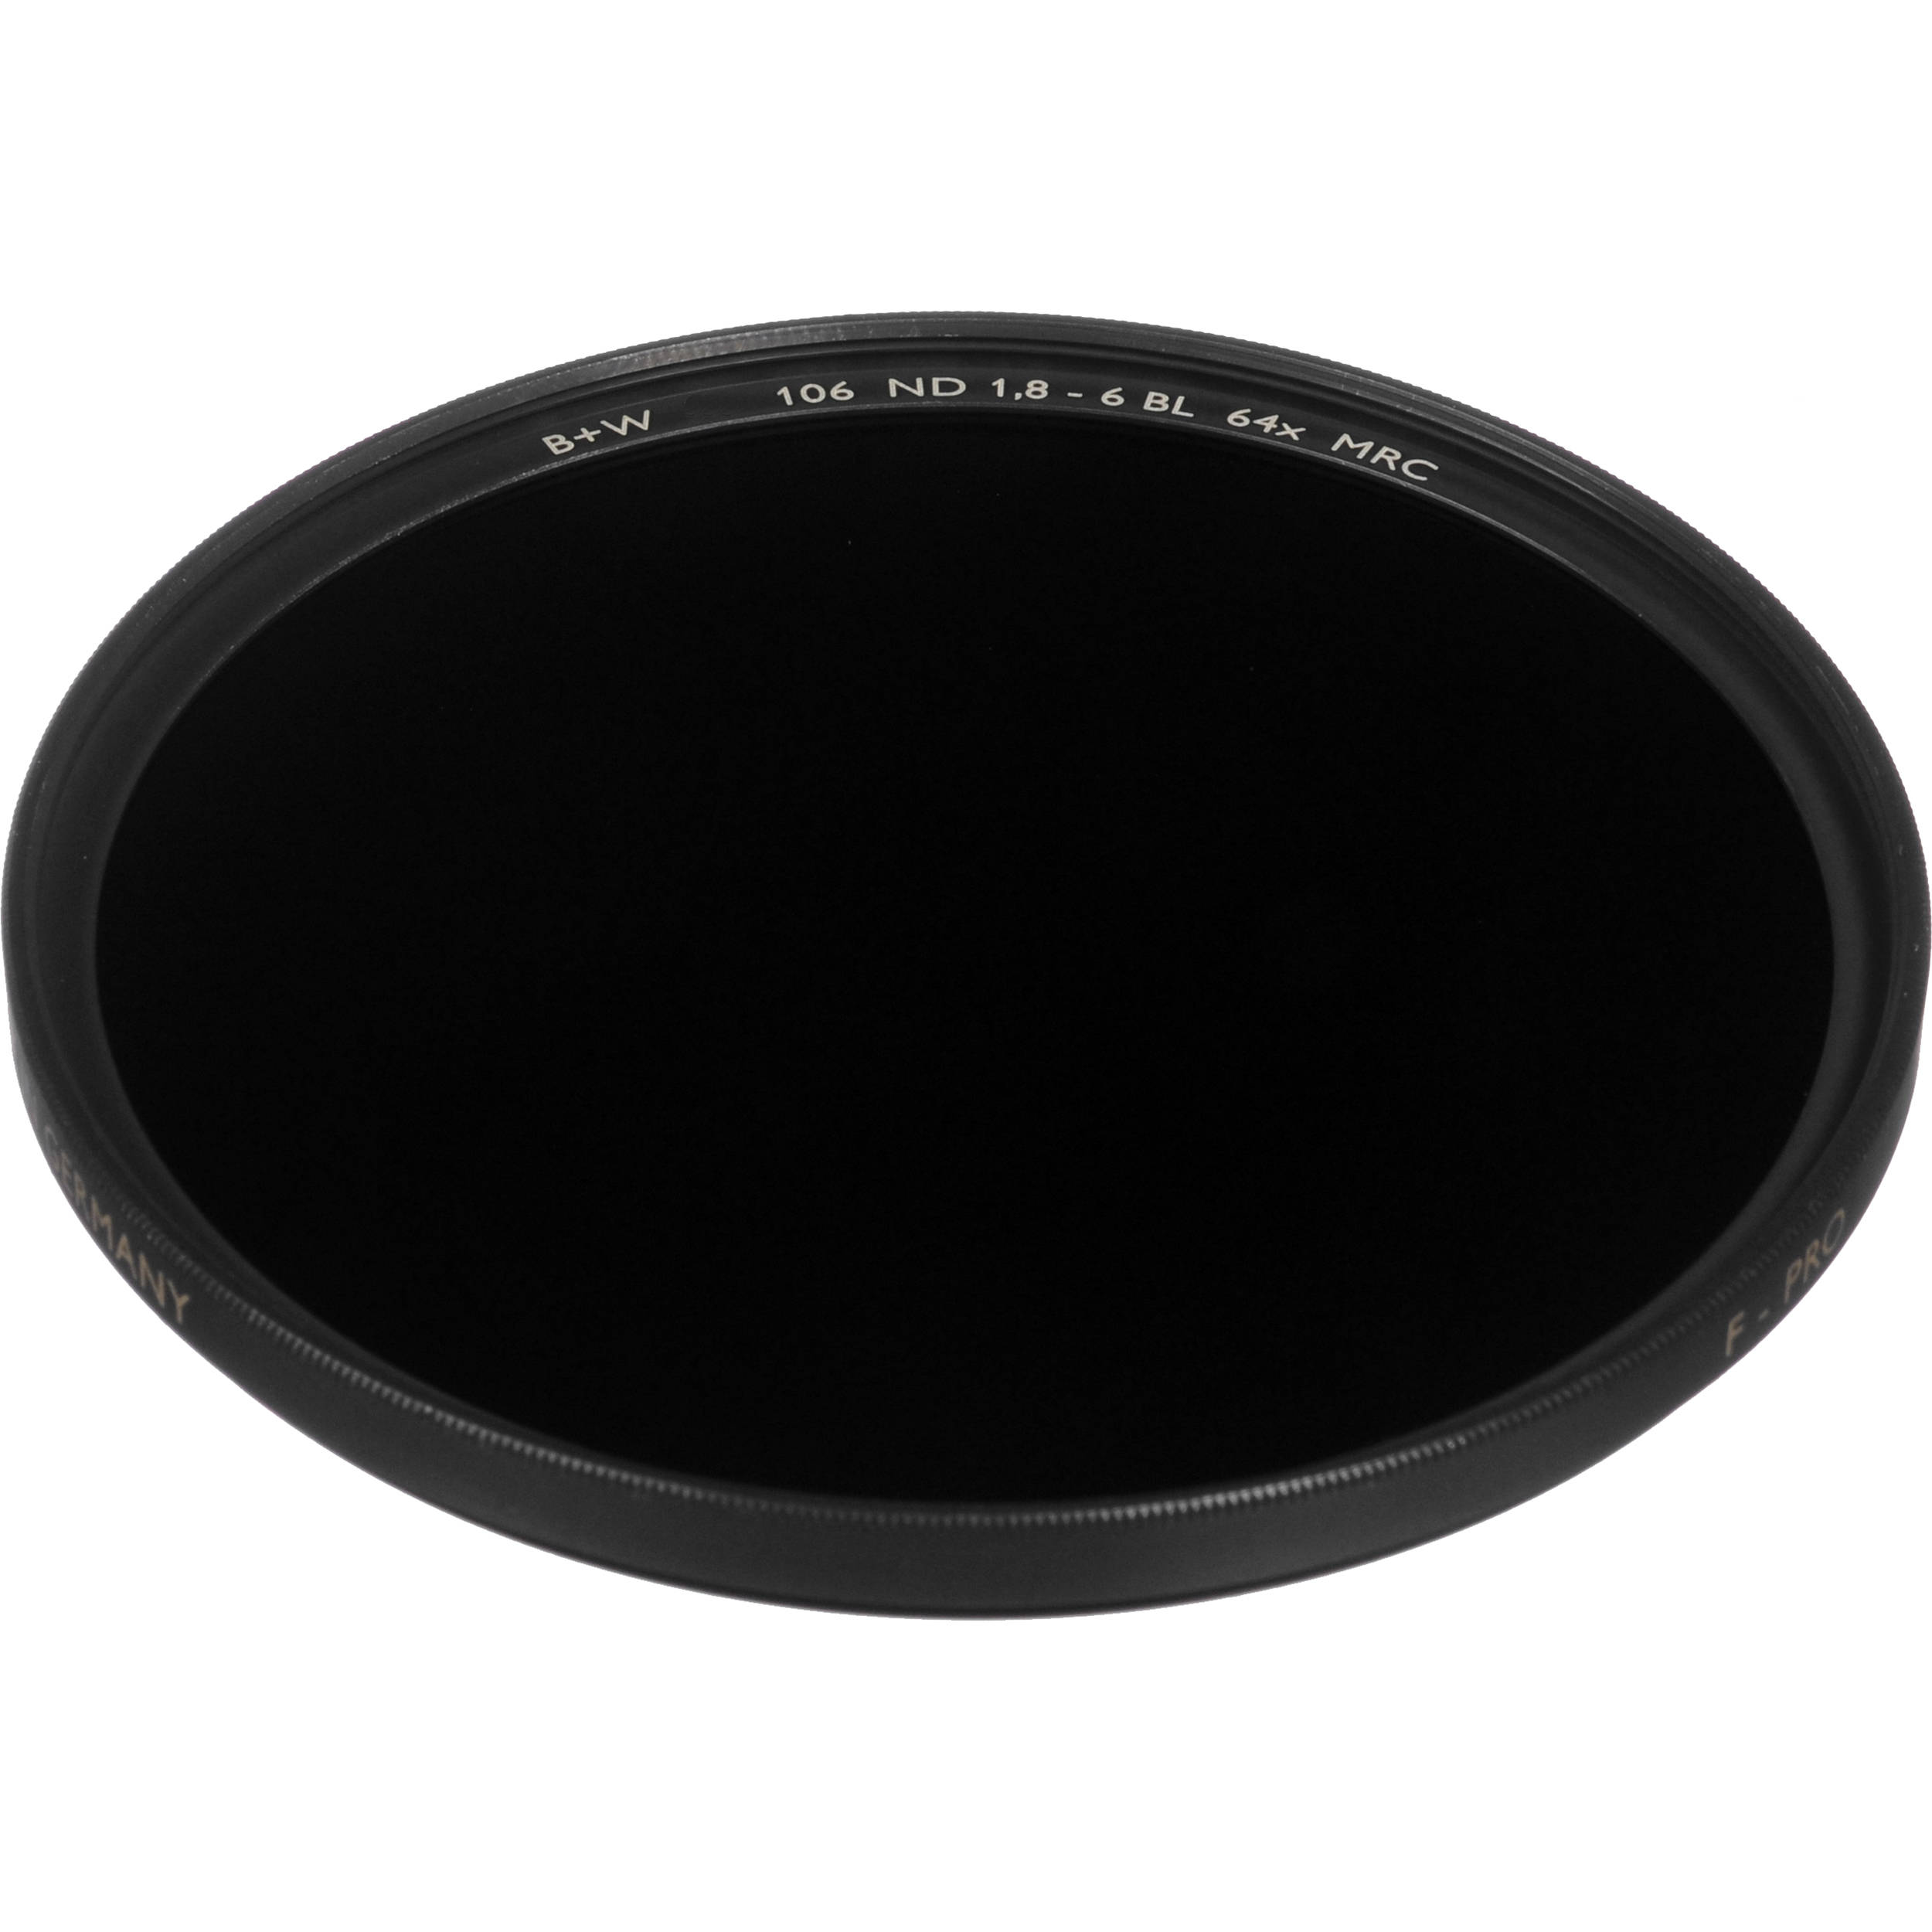 MRC B+W 66-1066168 77mm ND 1.8-64X Neutral Density Filter 106M with Multi-Resistant Coating